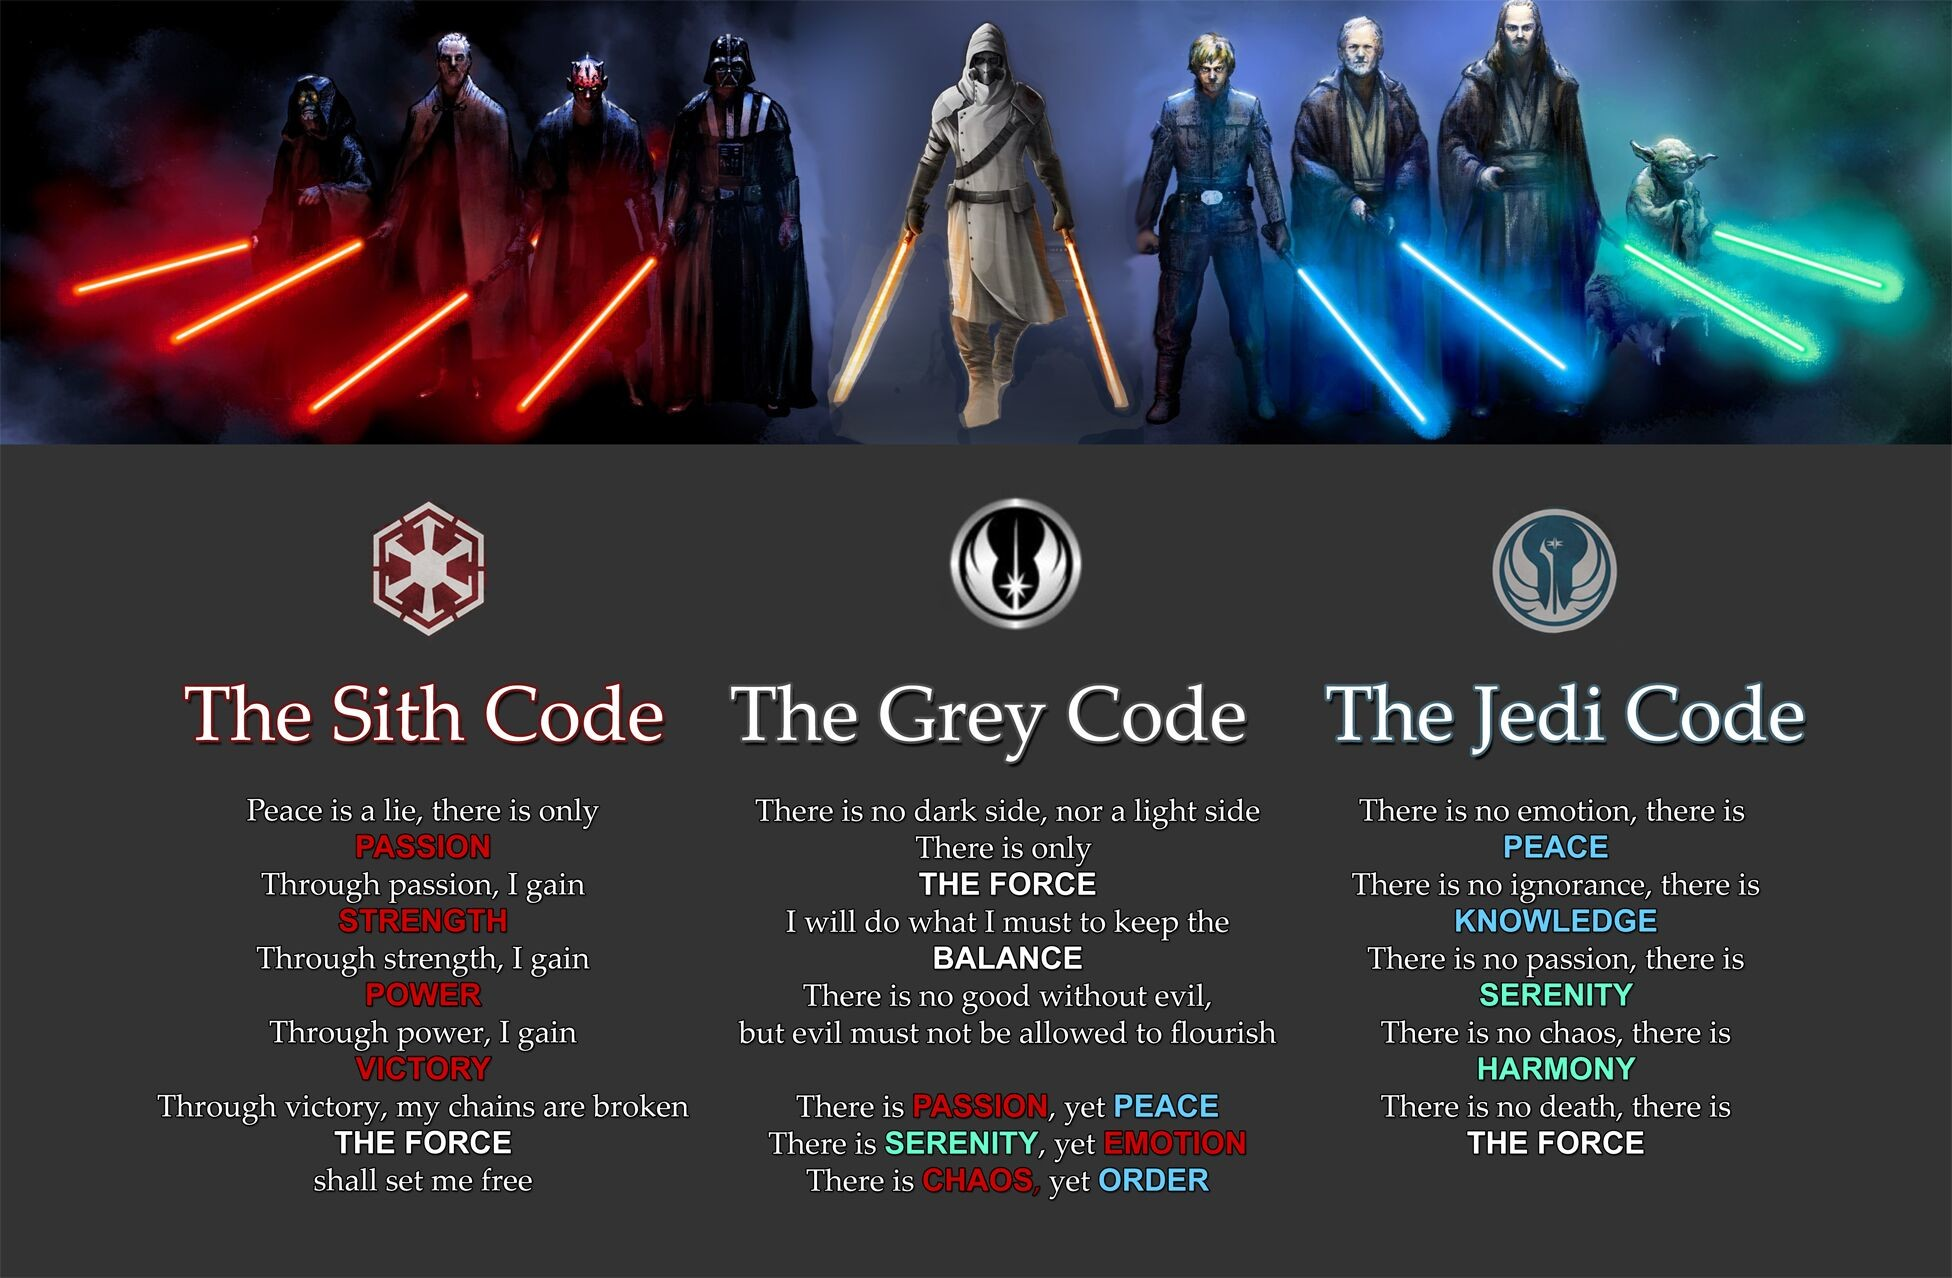 Sith Code Wallpaper (80+ images)